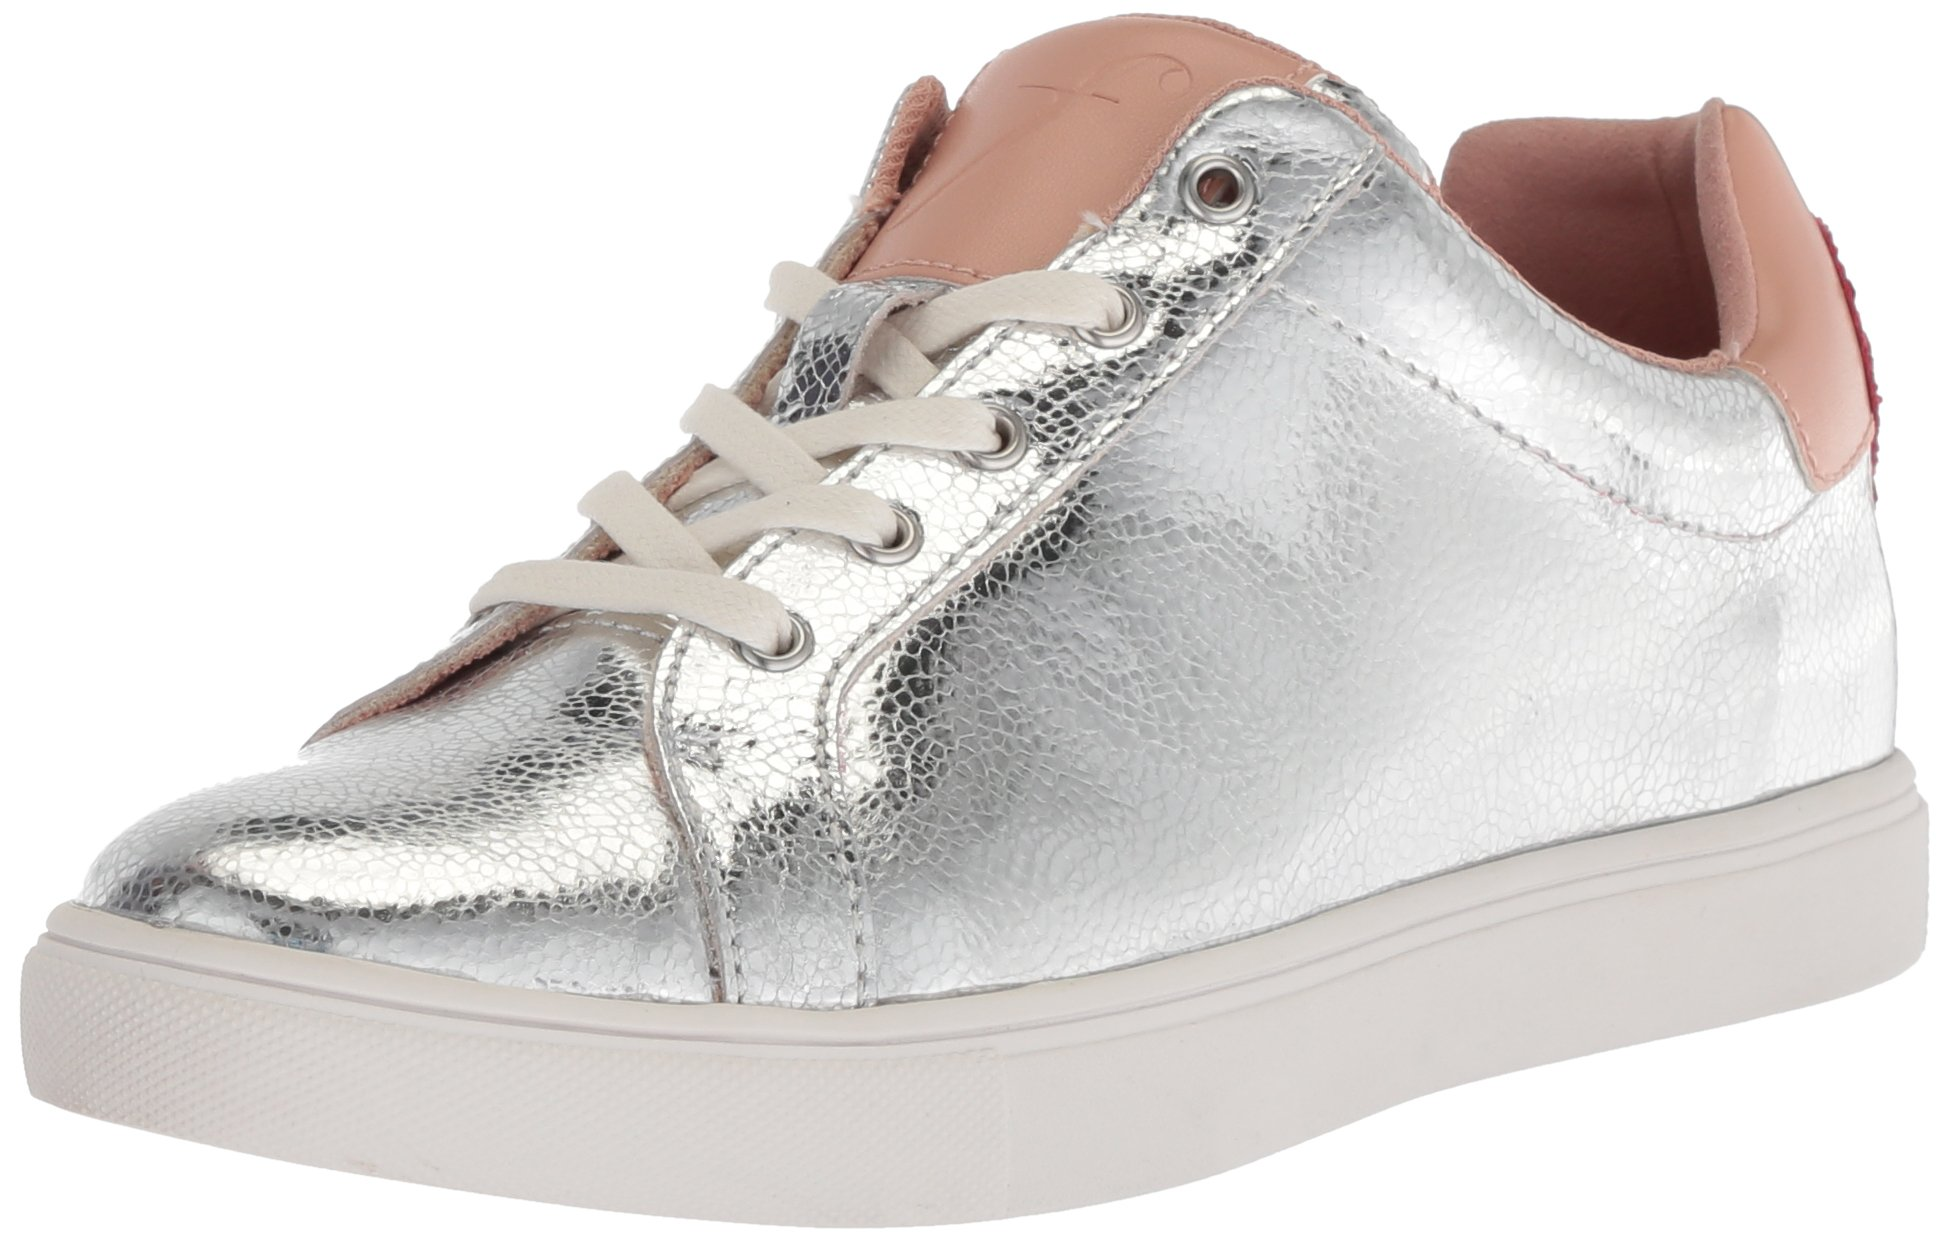 The Fix Women's Tailor Heart Lace-up Fashion Sneaker, Silver Crackle Leather, 9 B US